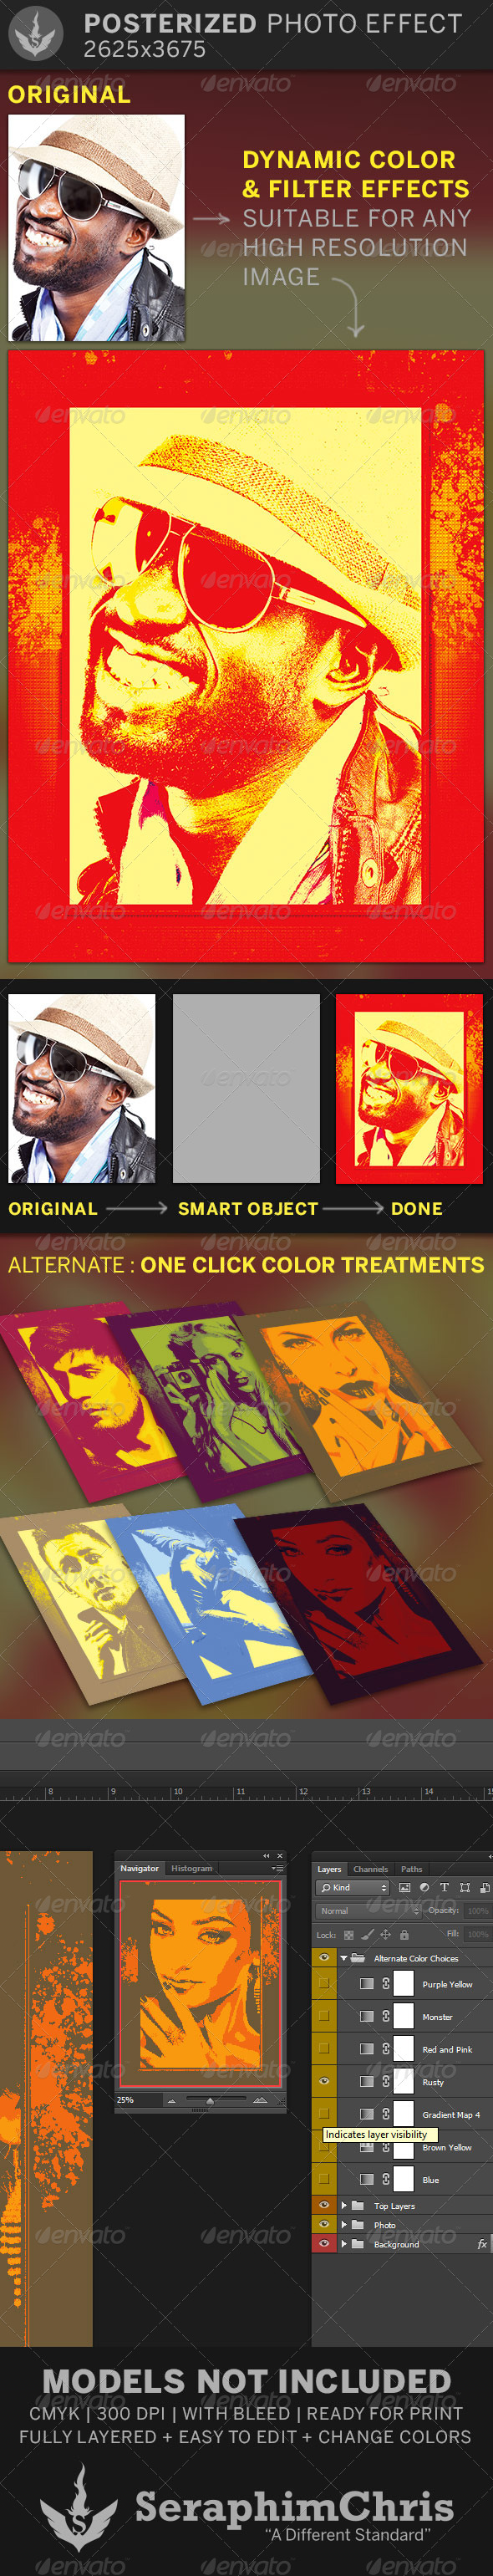 Posterized Photo Effect Template - Artistic Photo Templates